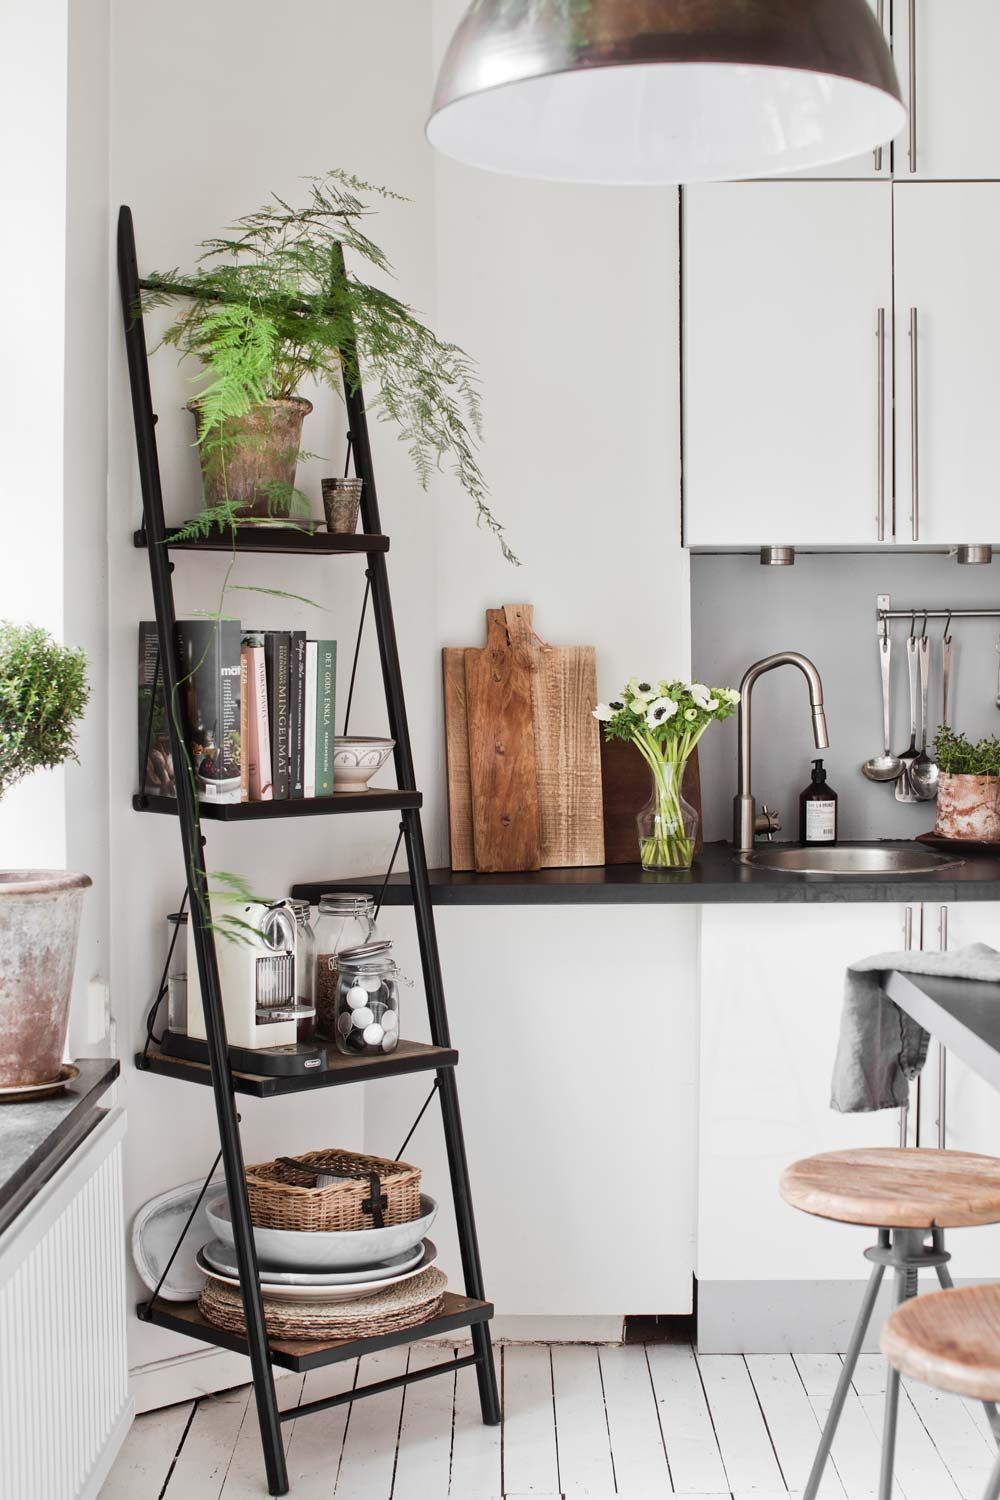 Leaning shelf in the cozy Scandinavian style kitchen of a home in Göteborg, Sweden.